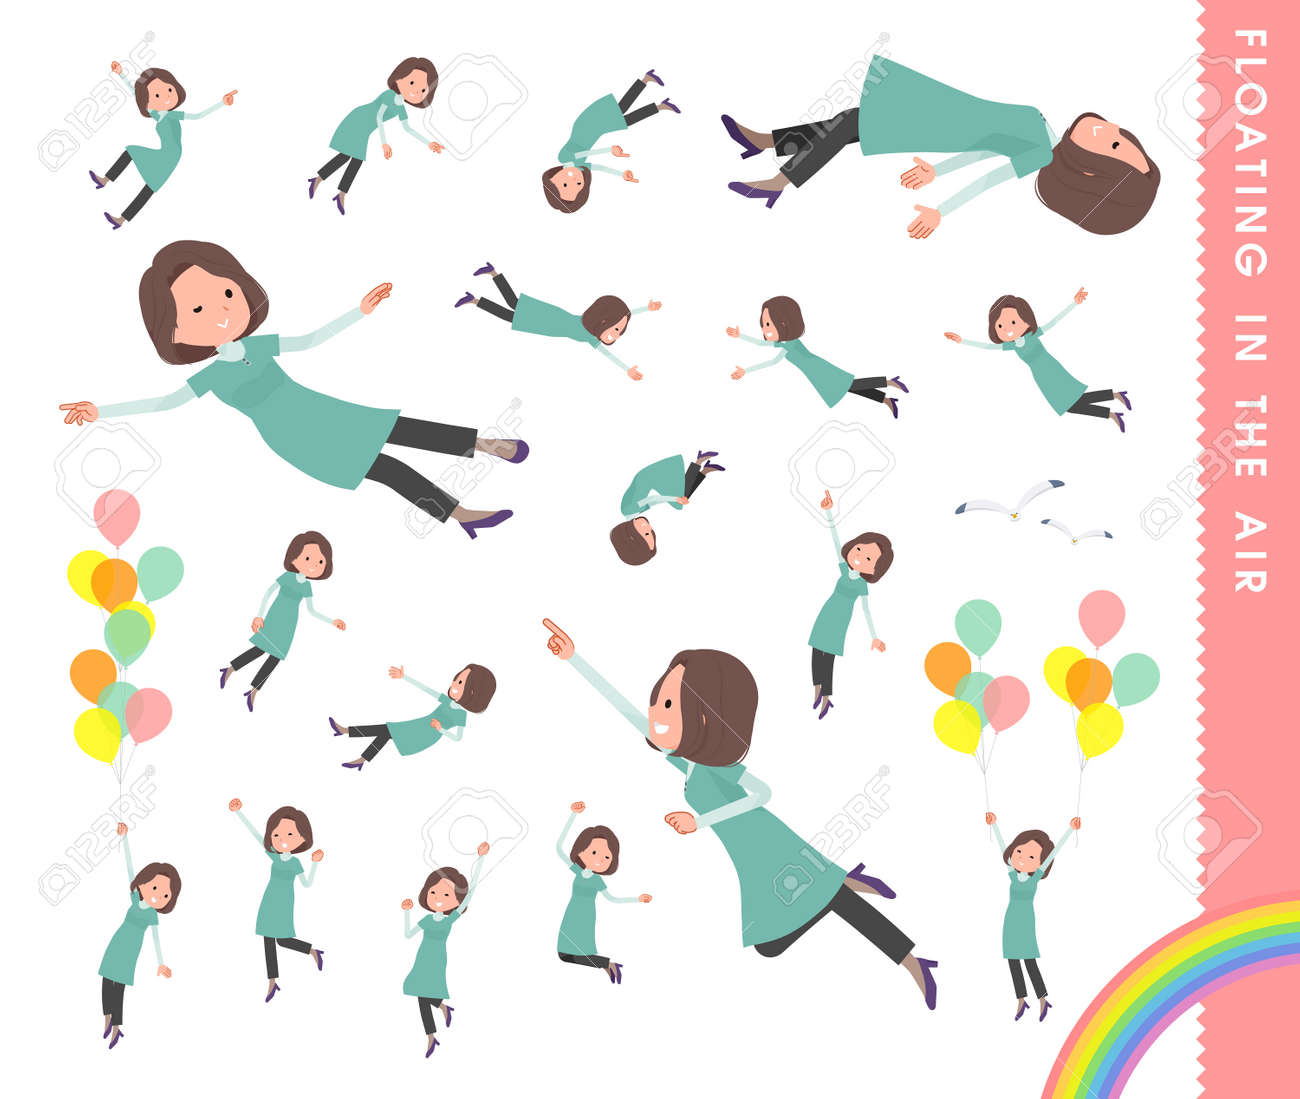 A set of middle-aged women in tunic floating in the air.It's vector art so easy to edit. - 168680177